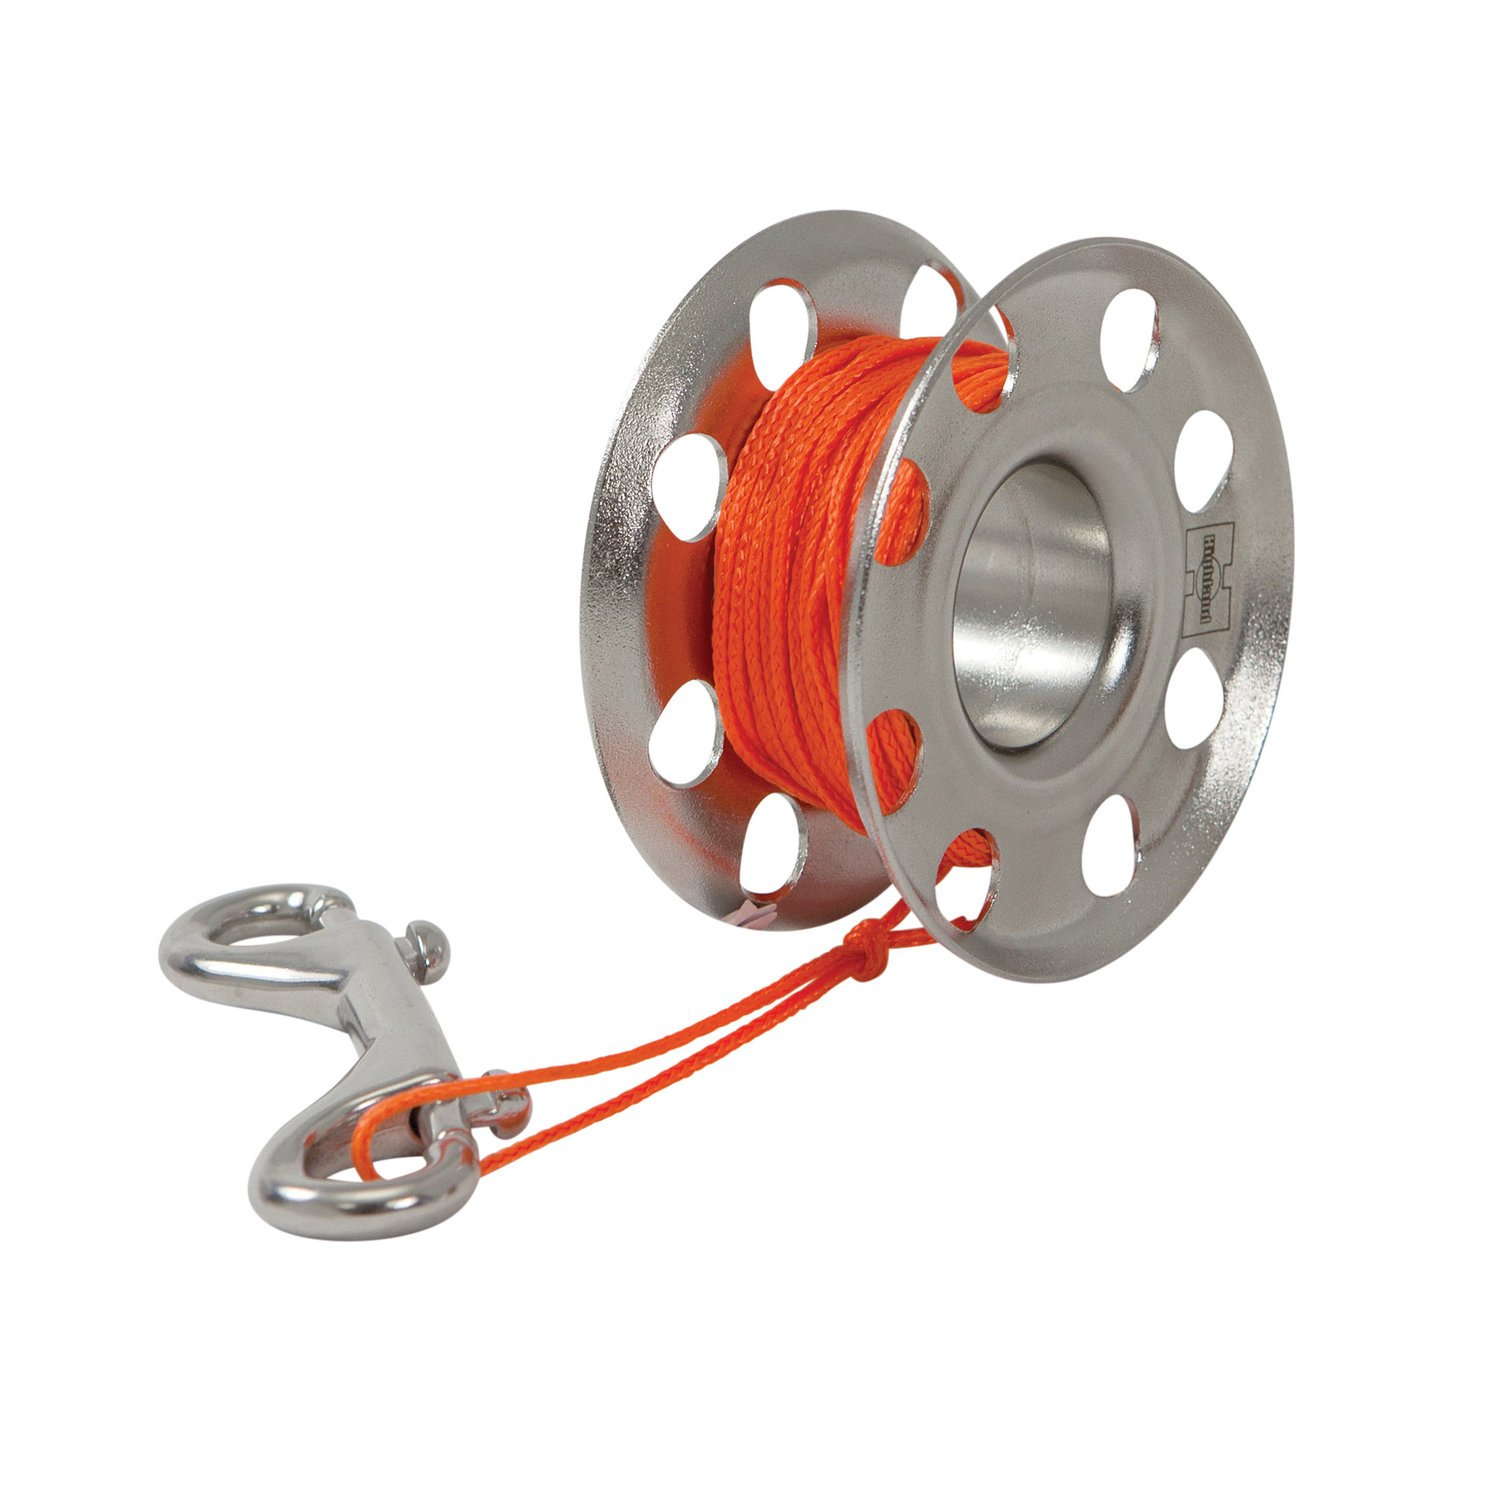 Highland by XS Scuba Diving Reel, Finger Spool, 100'